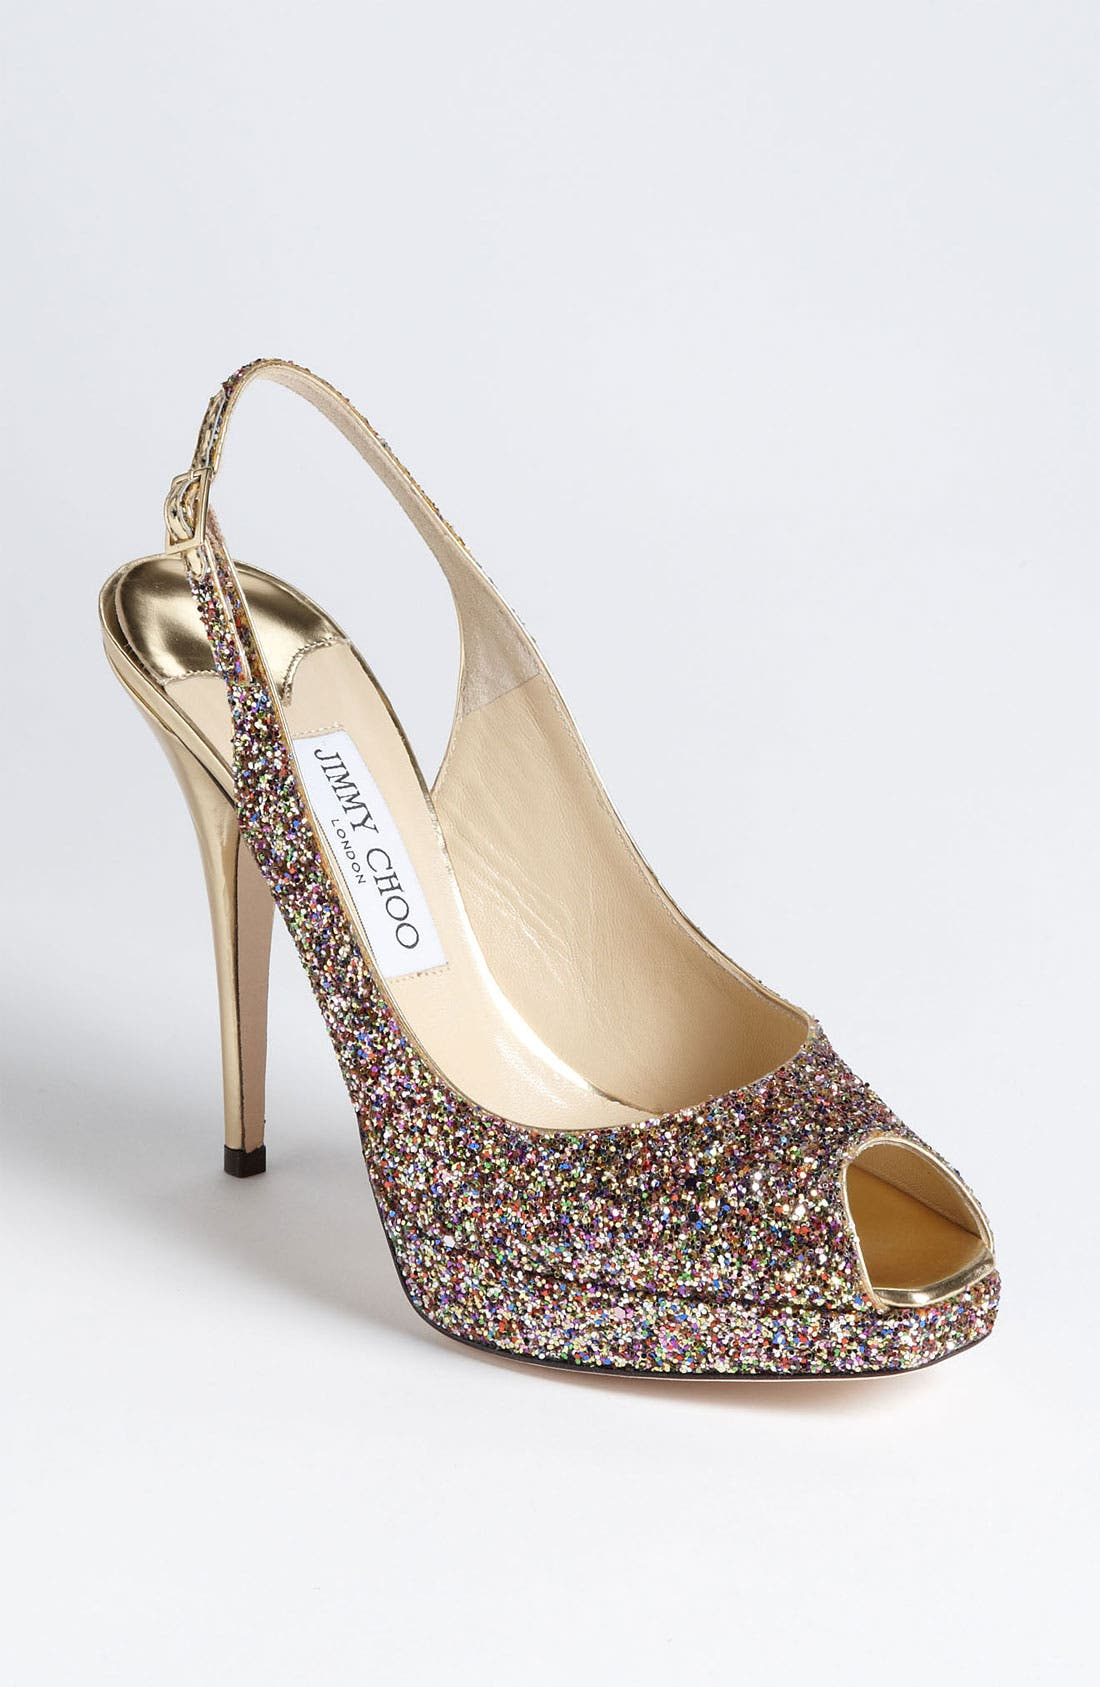 Alternate Image 1 Selected - Jimmy Choo 'Clue' Slingback Pump (Nordstrom Exclusive)